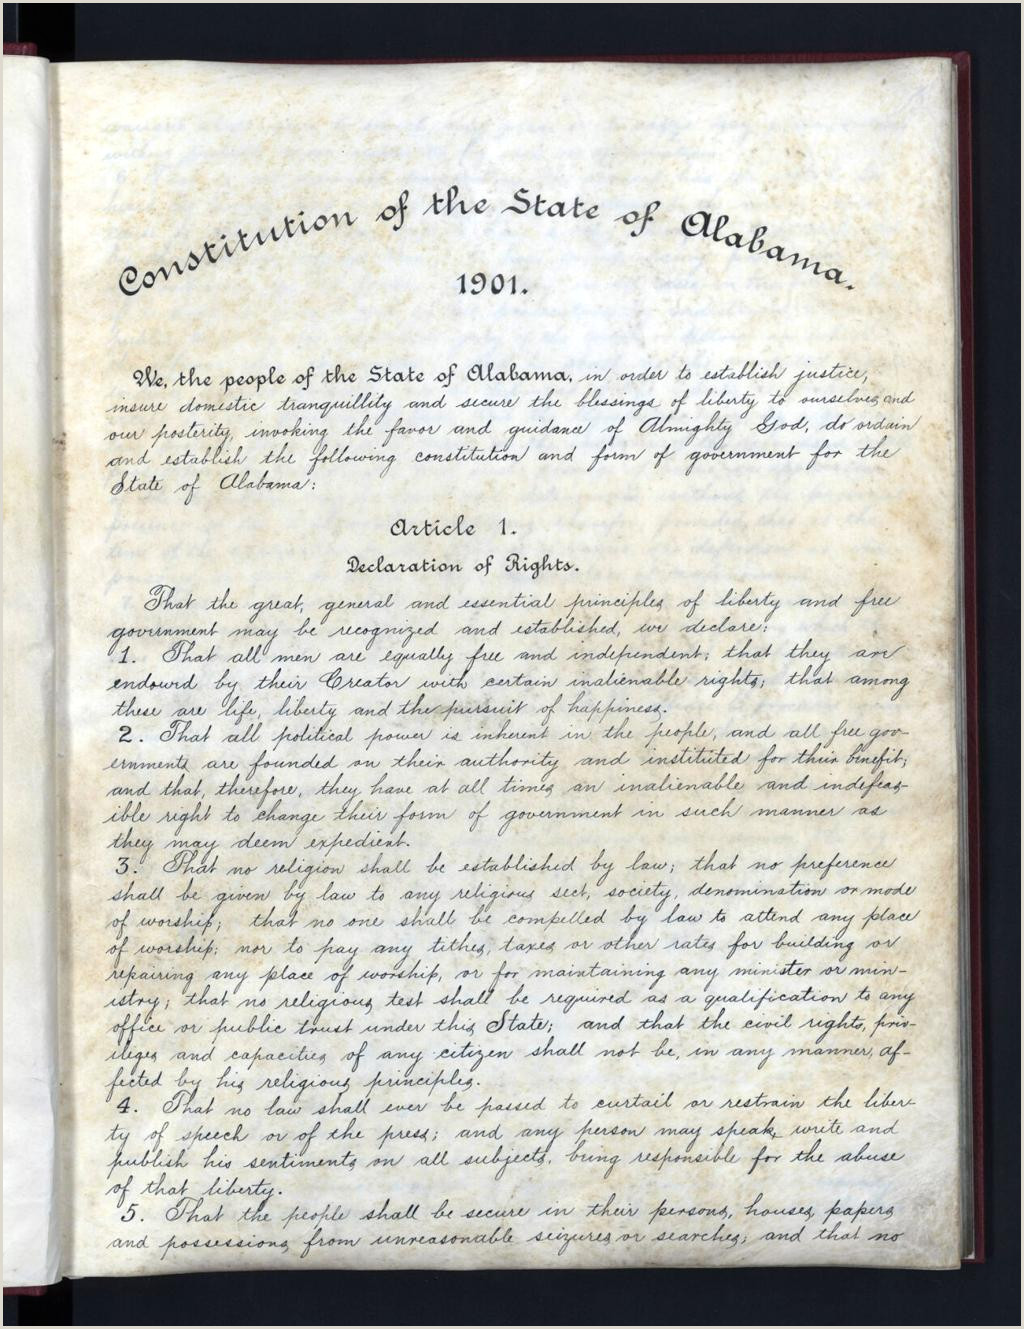 Unique Paper To Print Business Cards Voters Could Remove Racist Phrases From Alabama Constitution